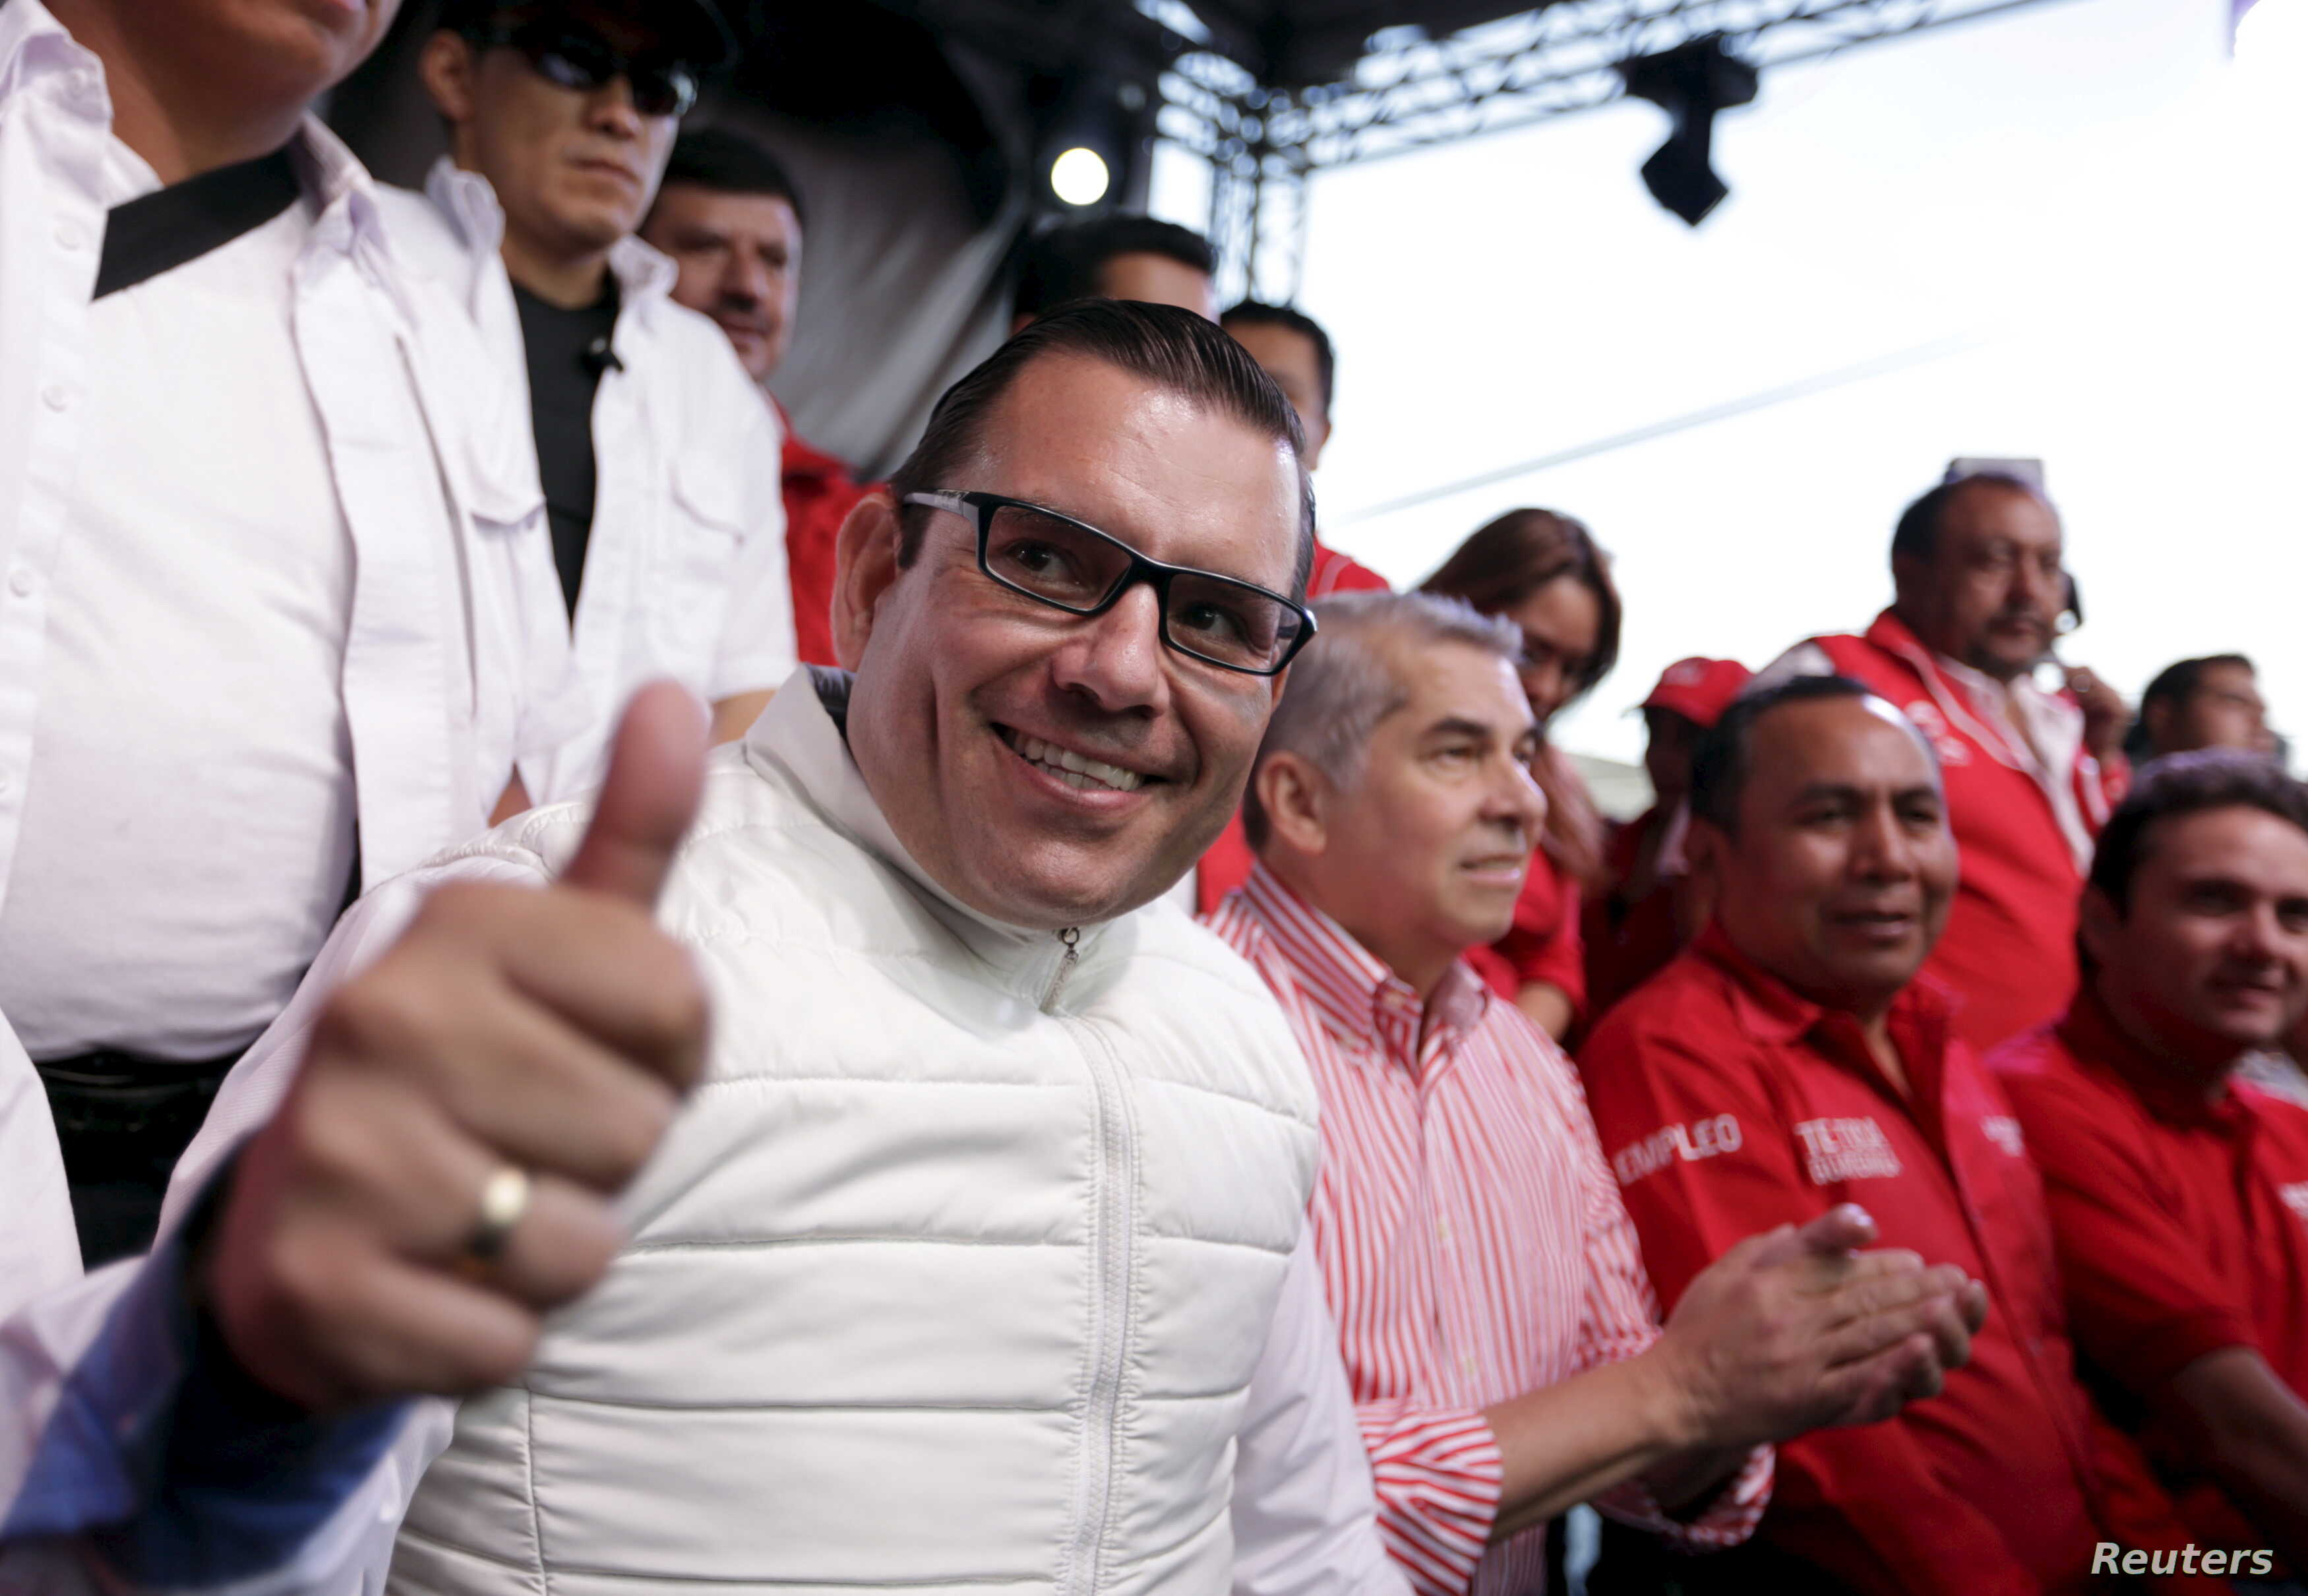 Guatemalan Democratic Liberty Party's (LIDER) presidential candidate Manuel Baldizon gestures during a political rally in Mixco, on the outskirts of Guatemala City, Aug. 30, 2015.